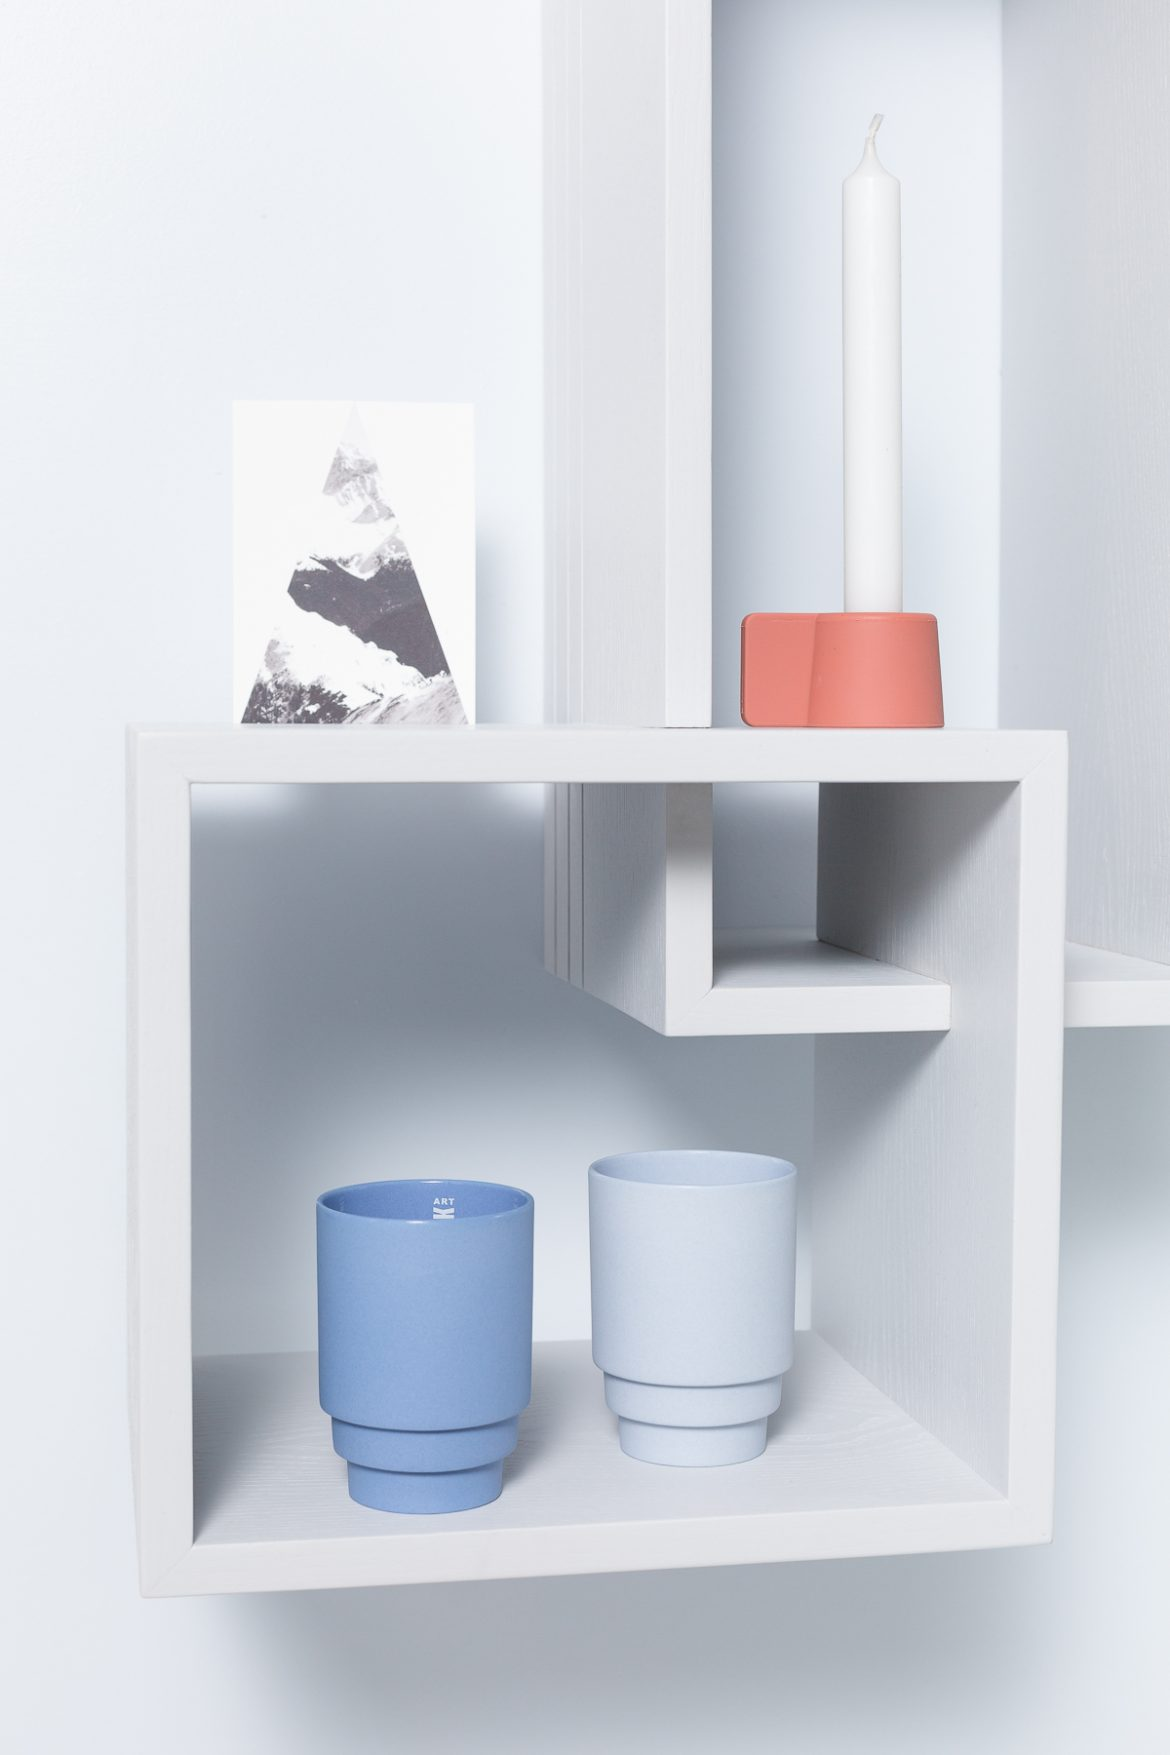 SHOP MINIMALISTISCHE ITEMS BIJ PUIK ART